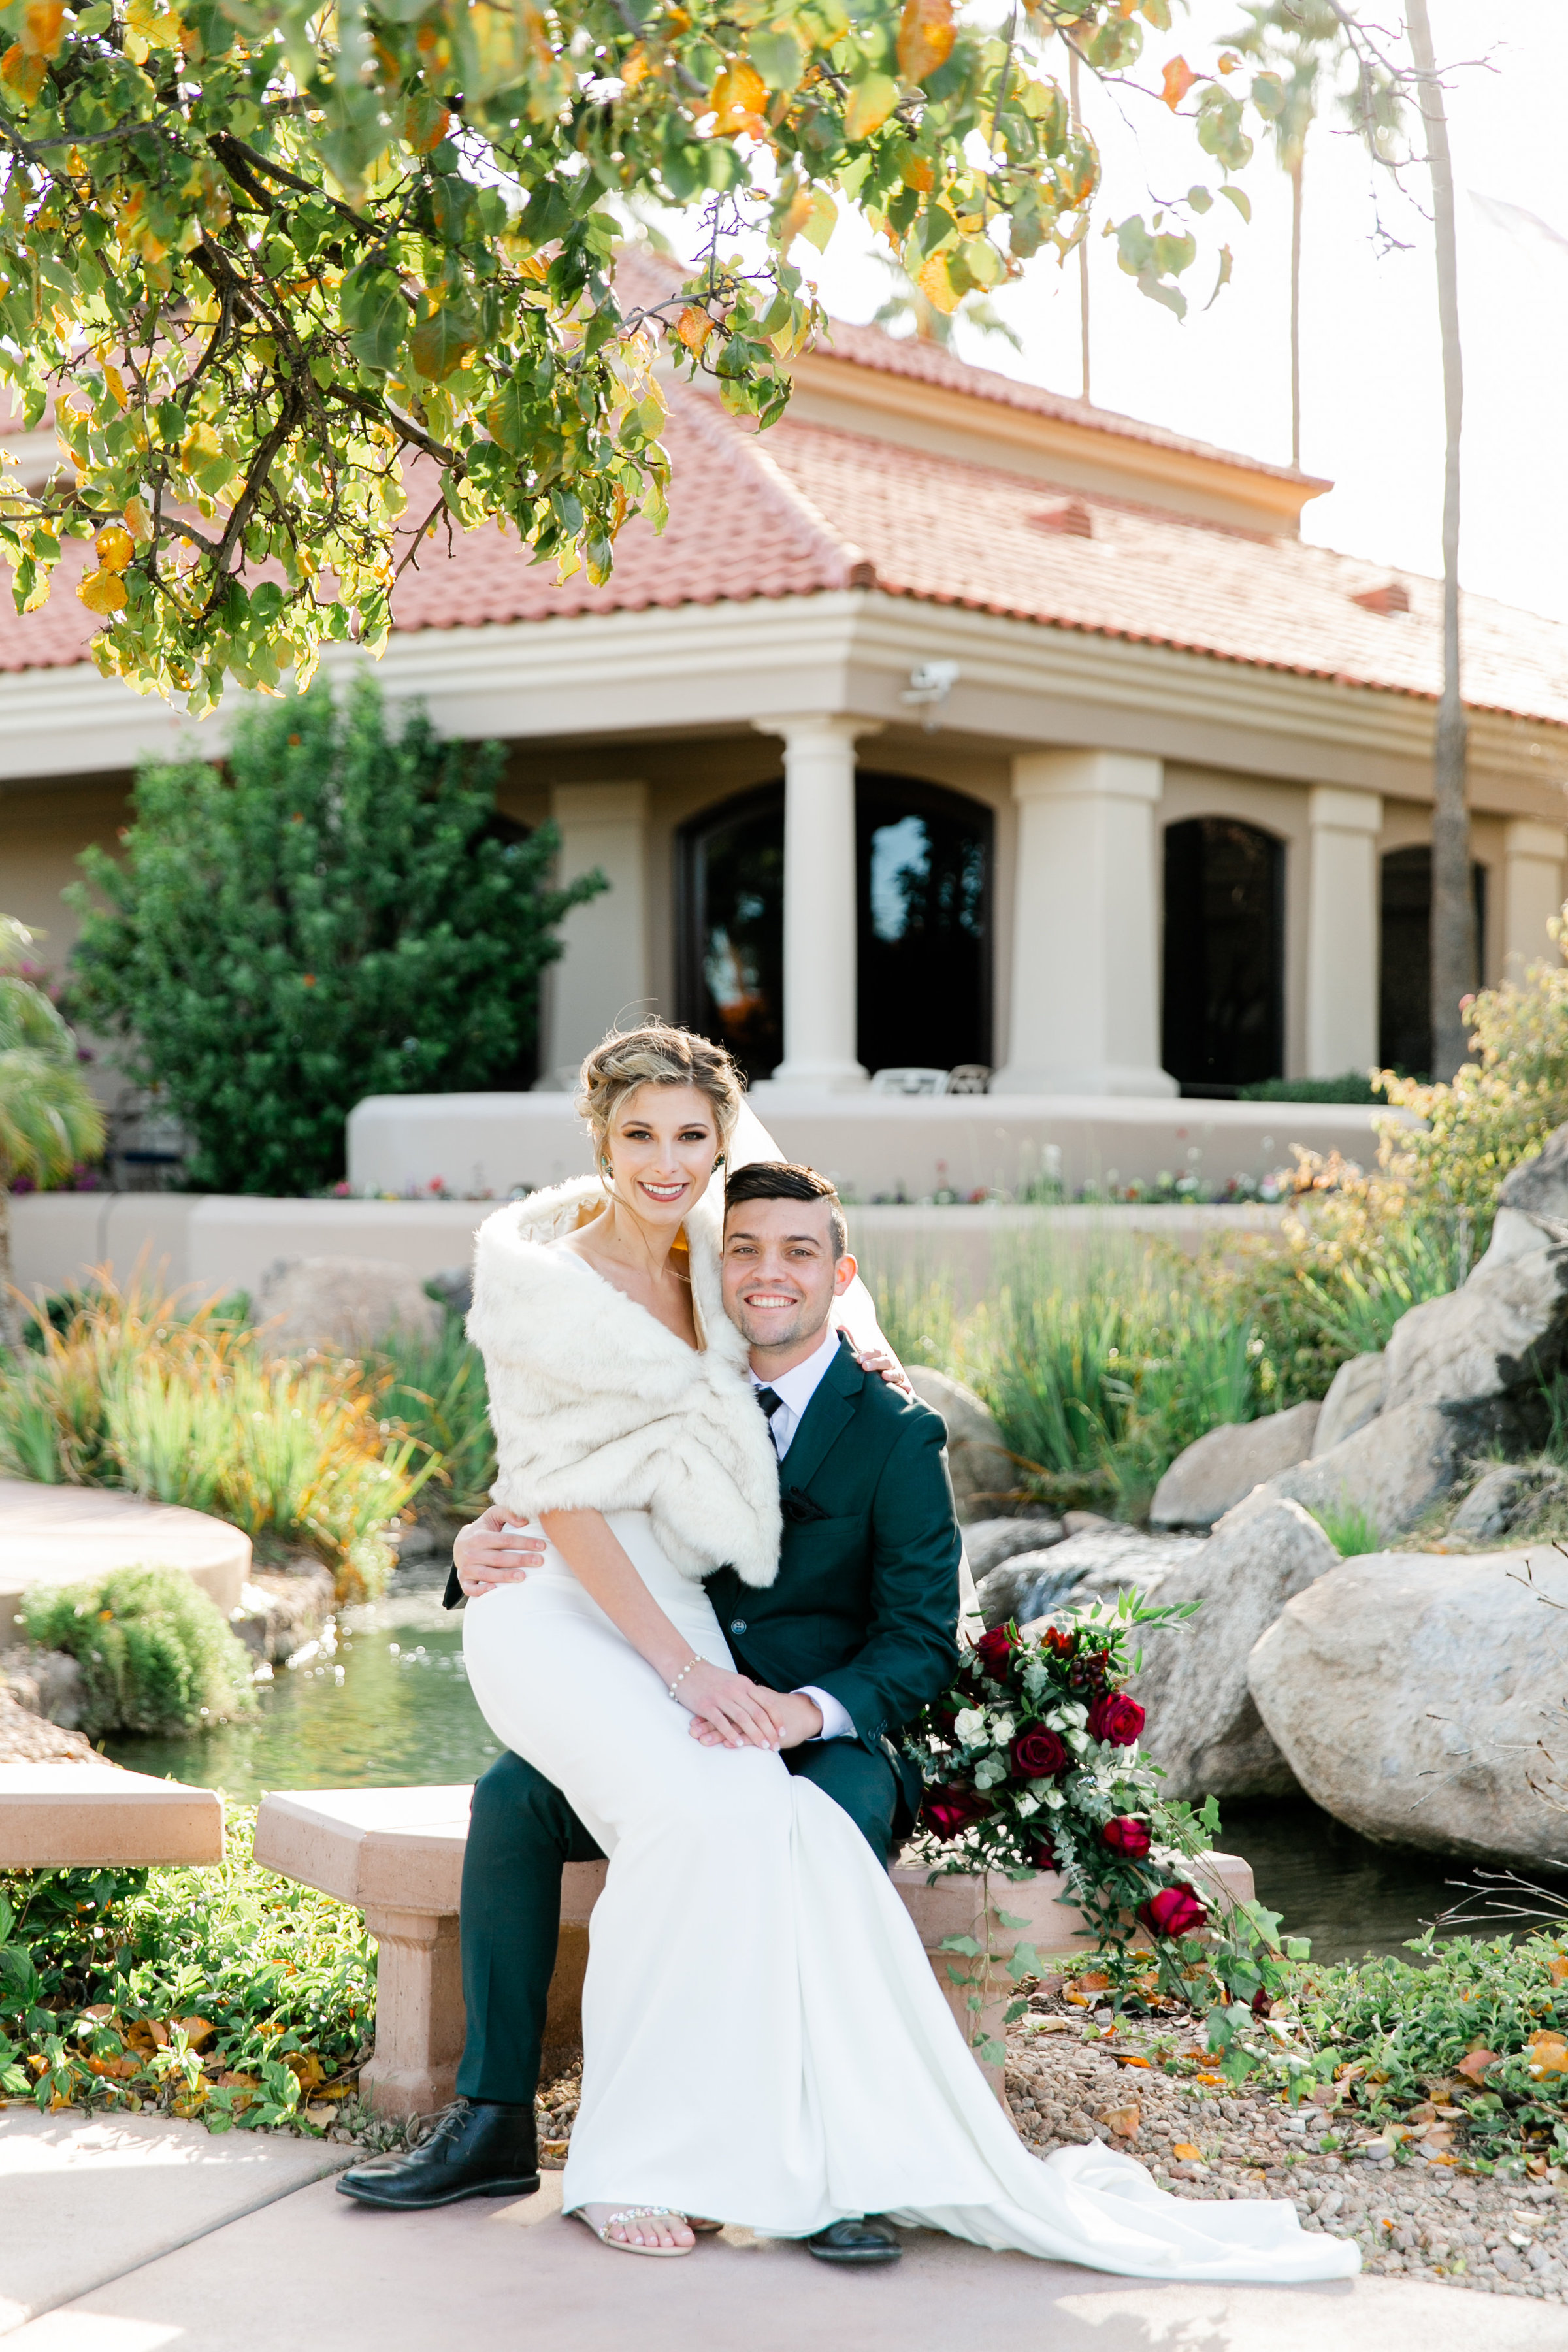 Karlie Colleen Photography - Gilbert Arizona Wedding - Val Vista Lakes - Brynne & Josh-445